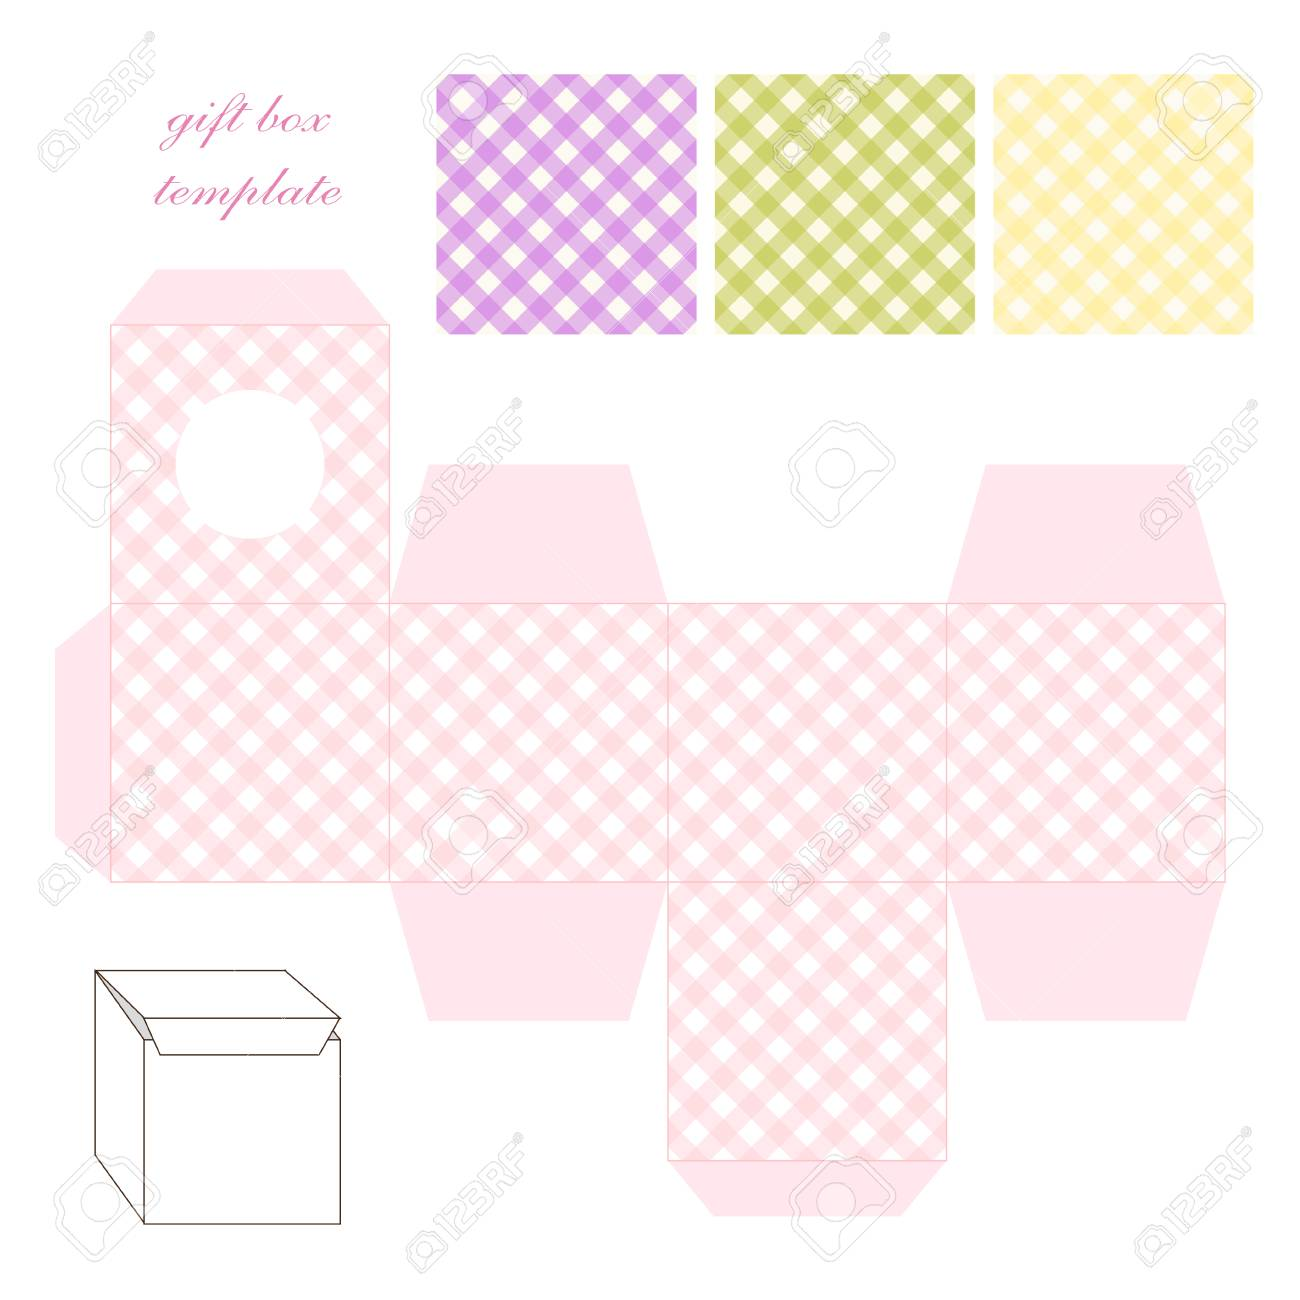 cute retro square gift box template with gingham ornament to